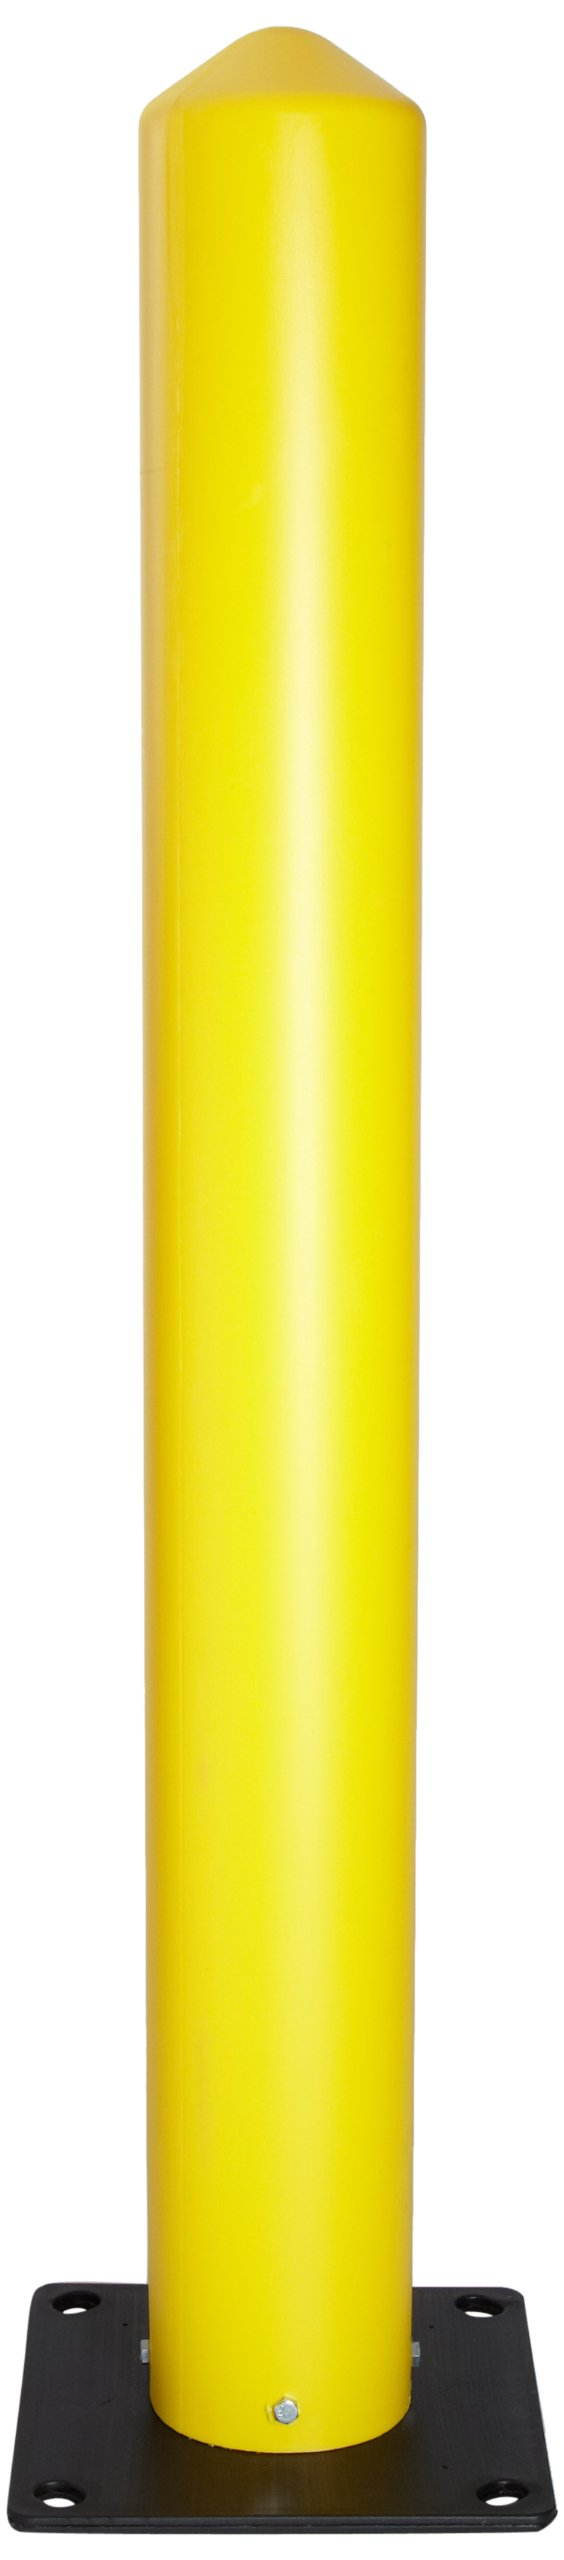 Eagle 1731 Poly Bollard Post, 5'' Width x 42'' Height, Yellow by Eagle